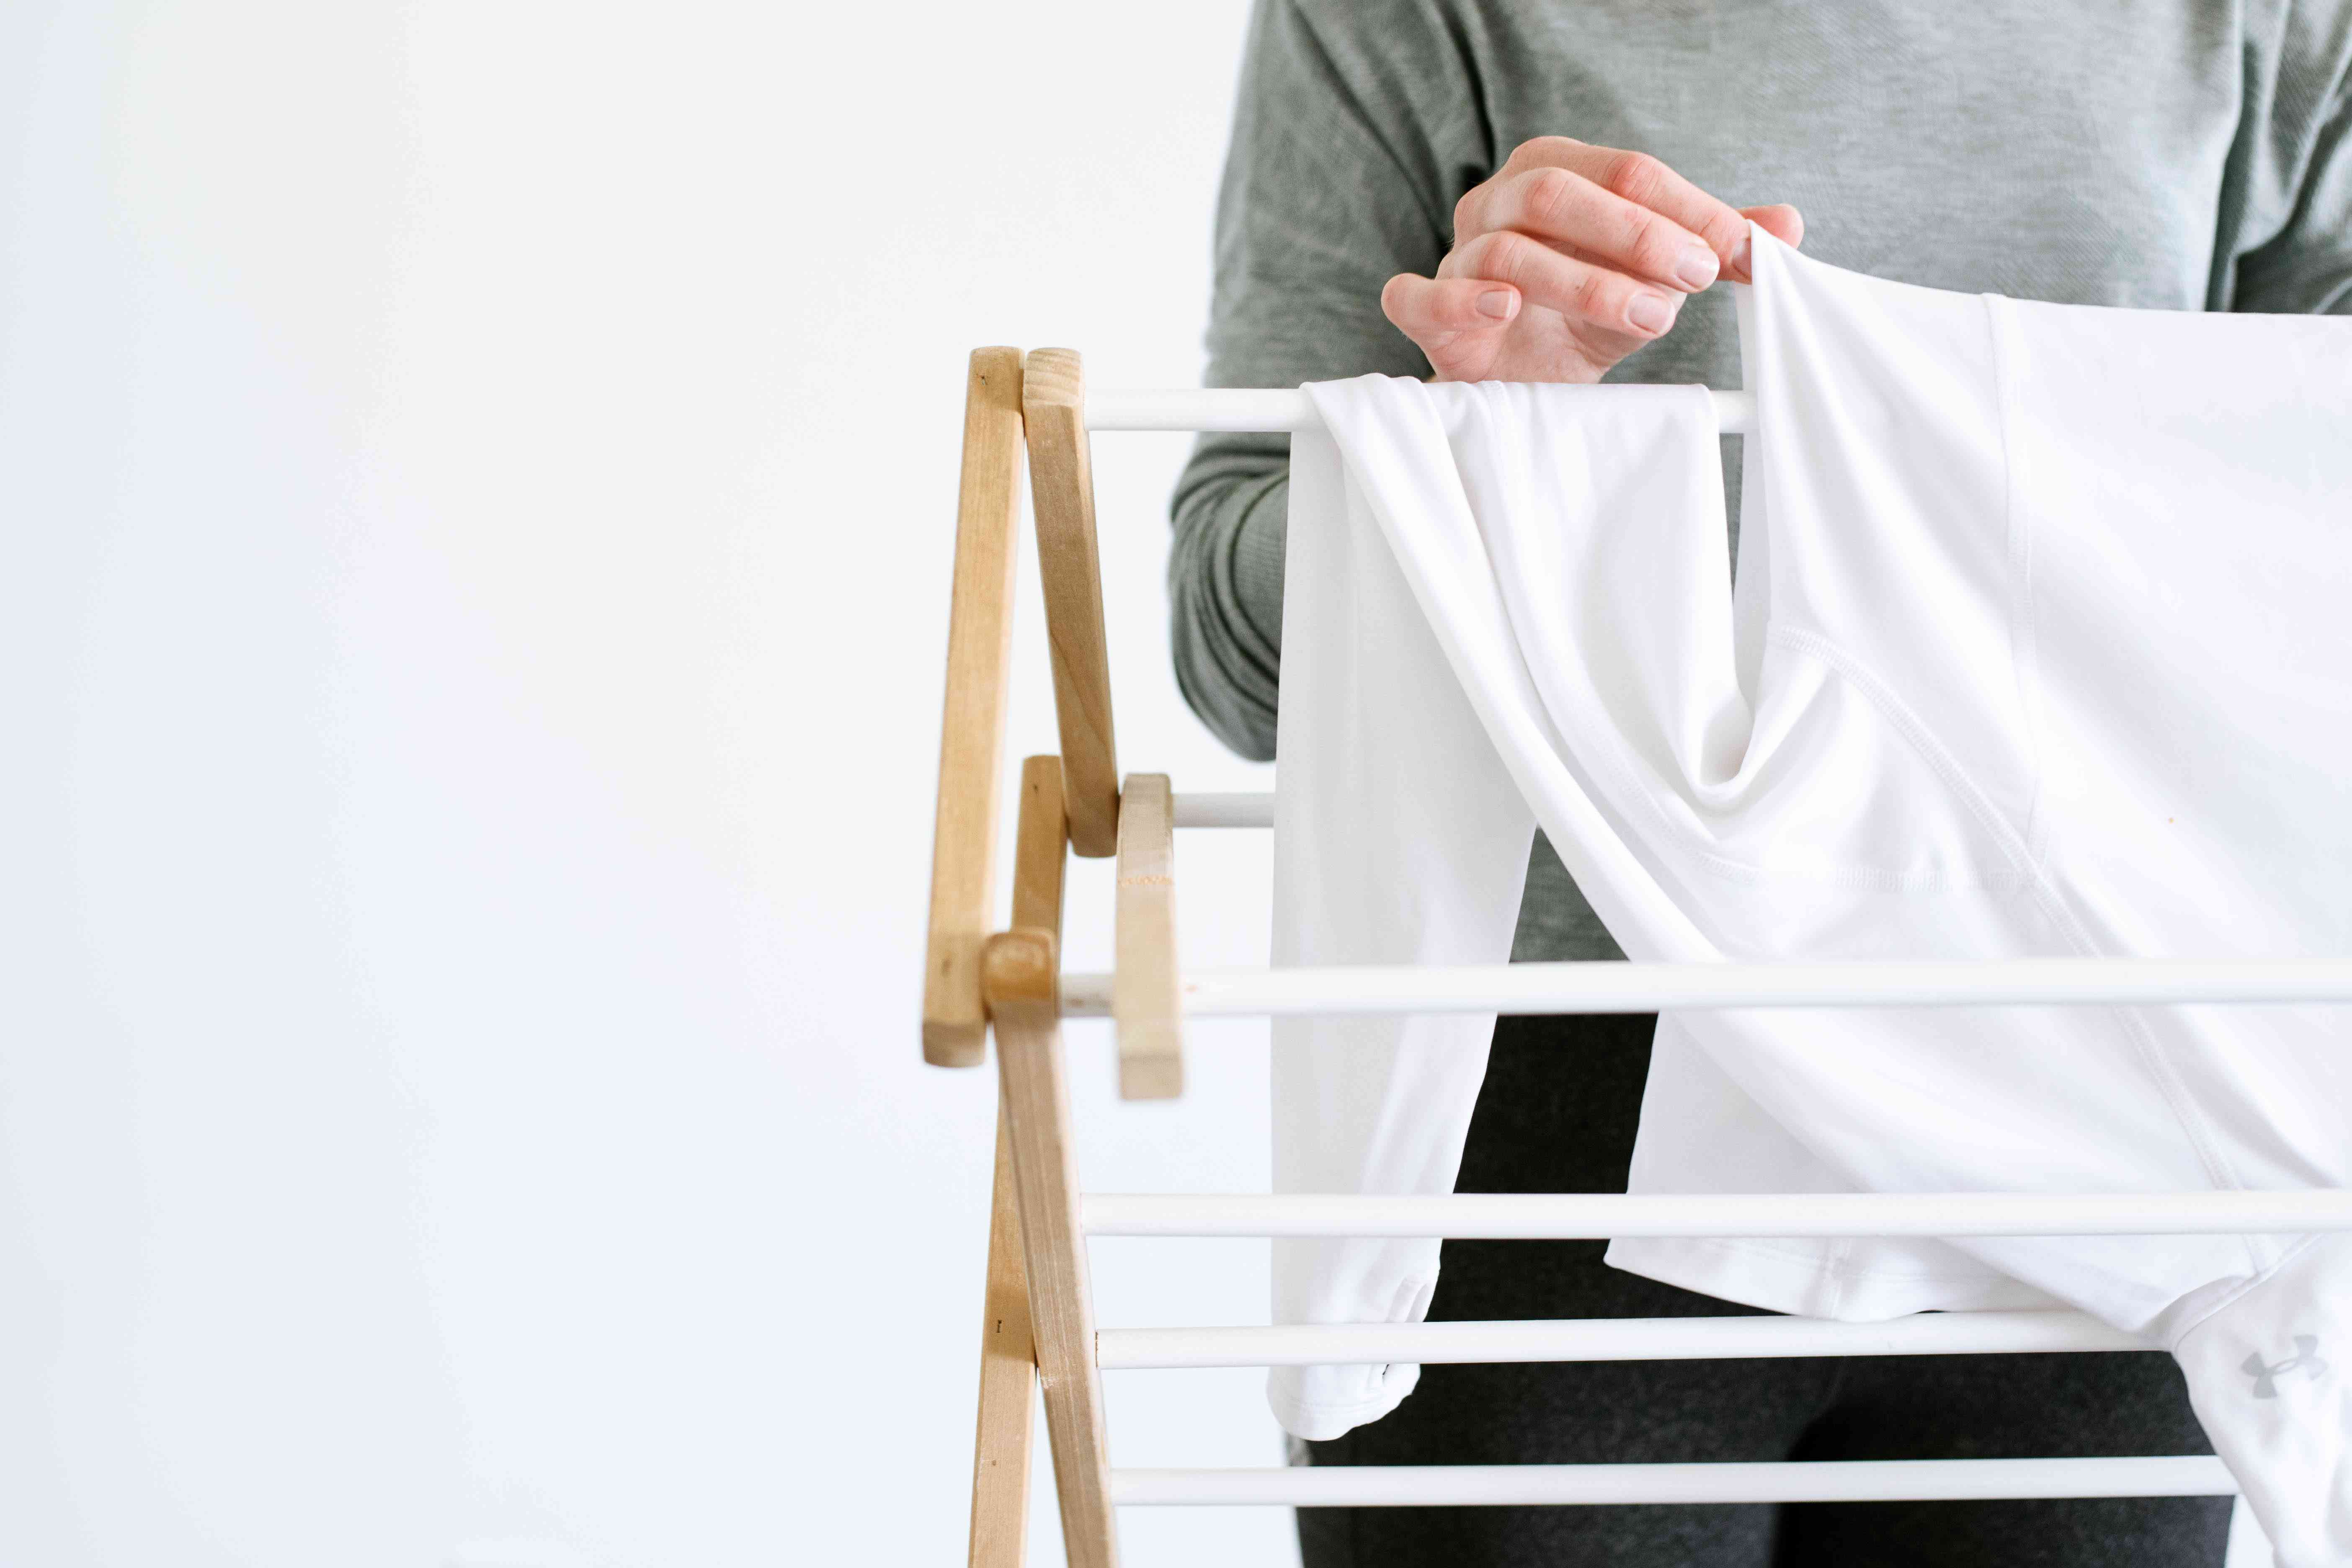 Someone hanging a garment on a drying rack